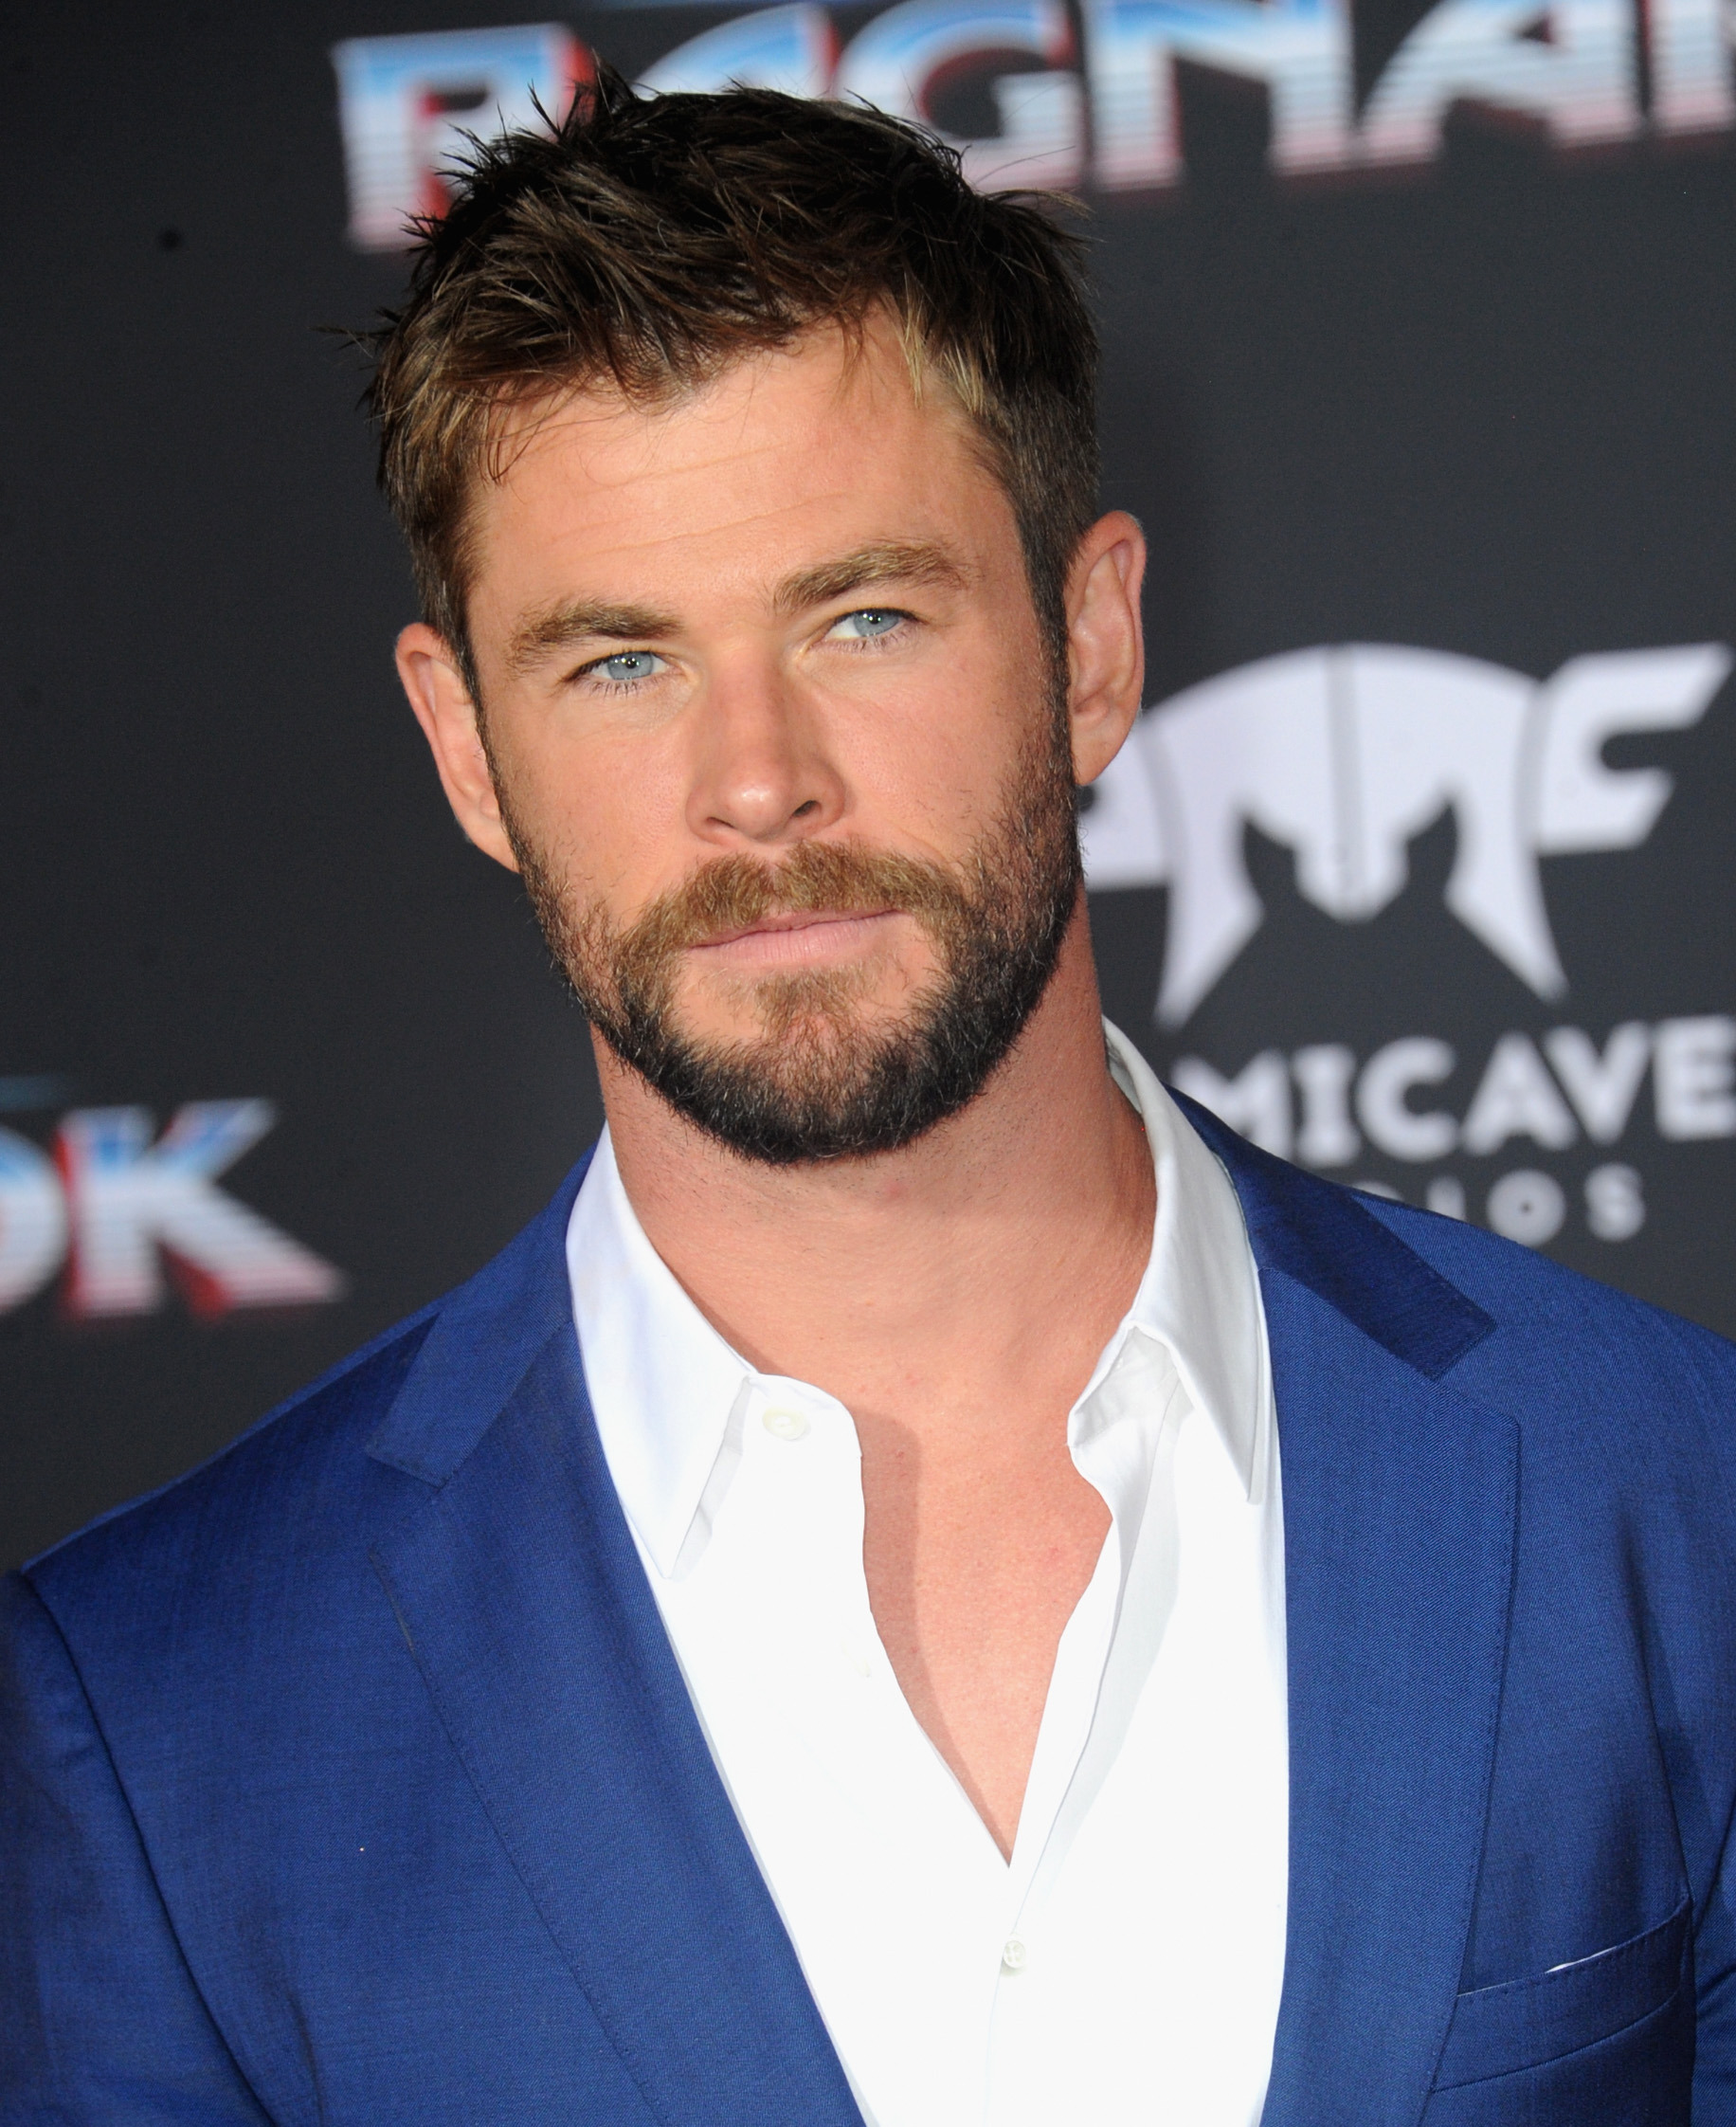 Premiere Of Disney And Marvel's 'Thor: Ragnarok' - Arrivals